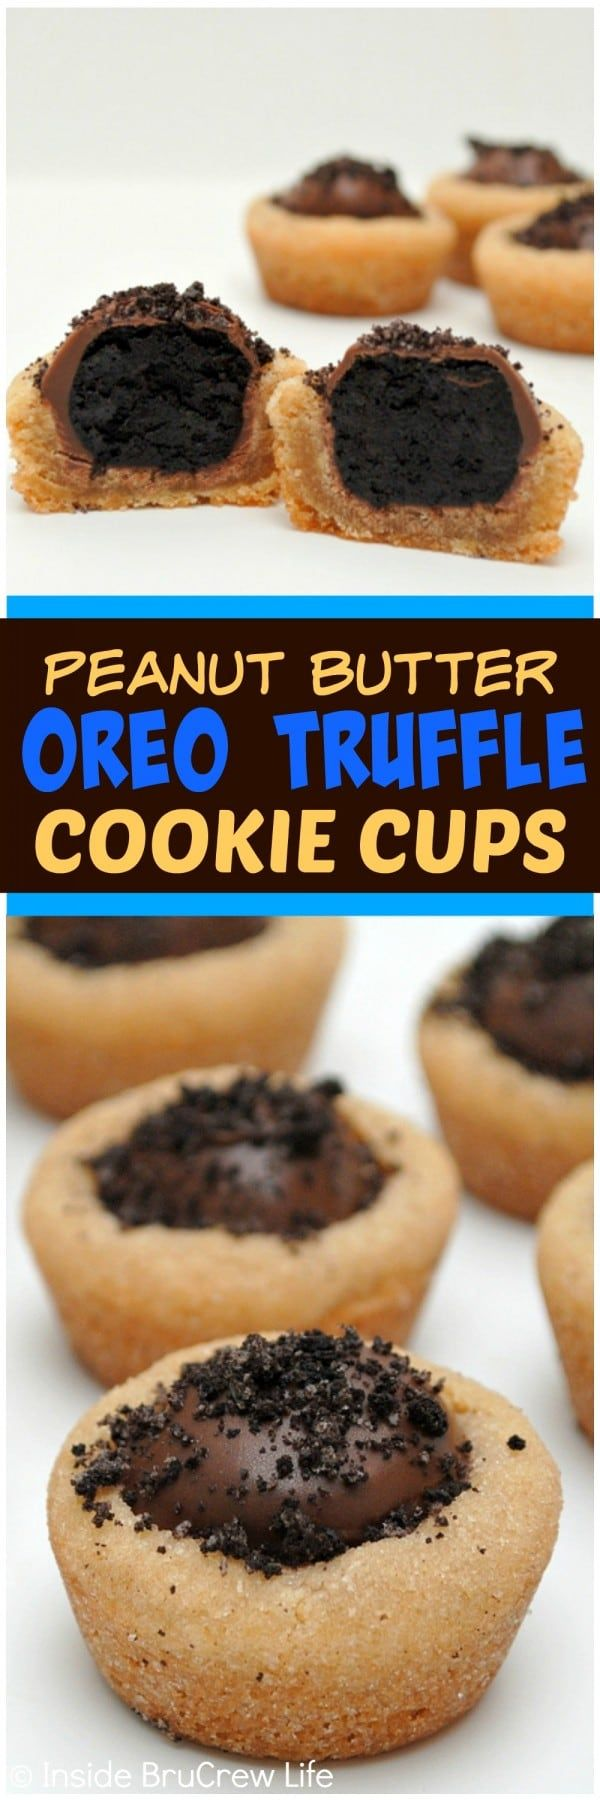 Peanut Butter Oreo Truffle Cups - adding an Oreo truffle to the top of these soft peanut butter cups is an awesome idea! Great dessert recipe!